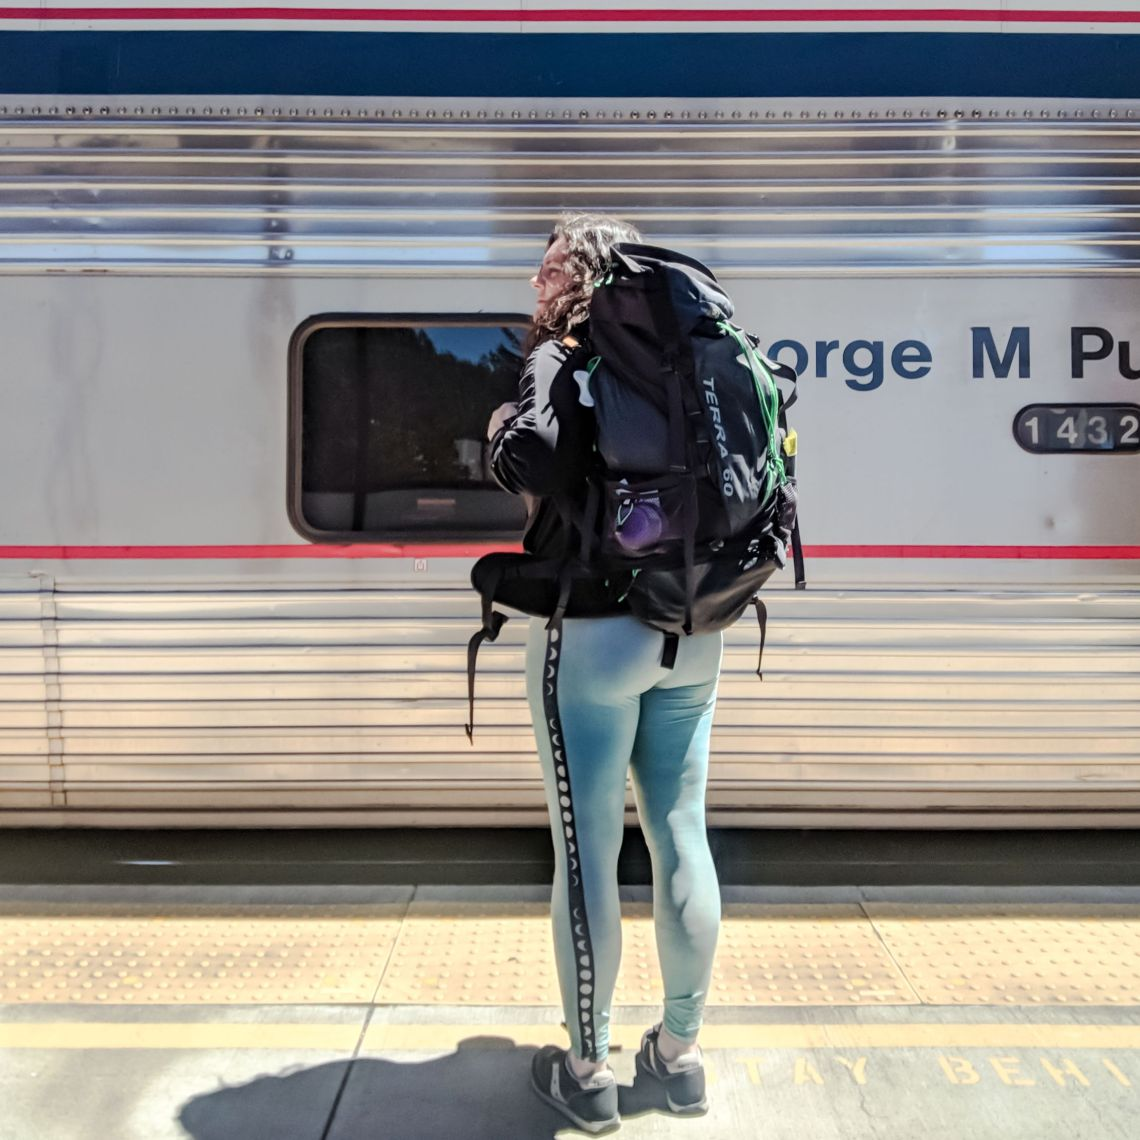 camping without a car in Chemult, Oregon Amtrak Station